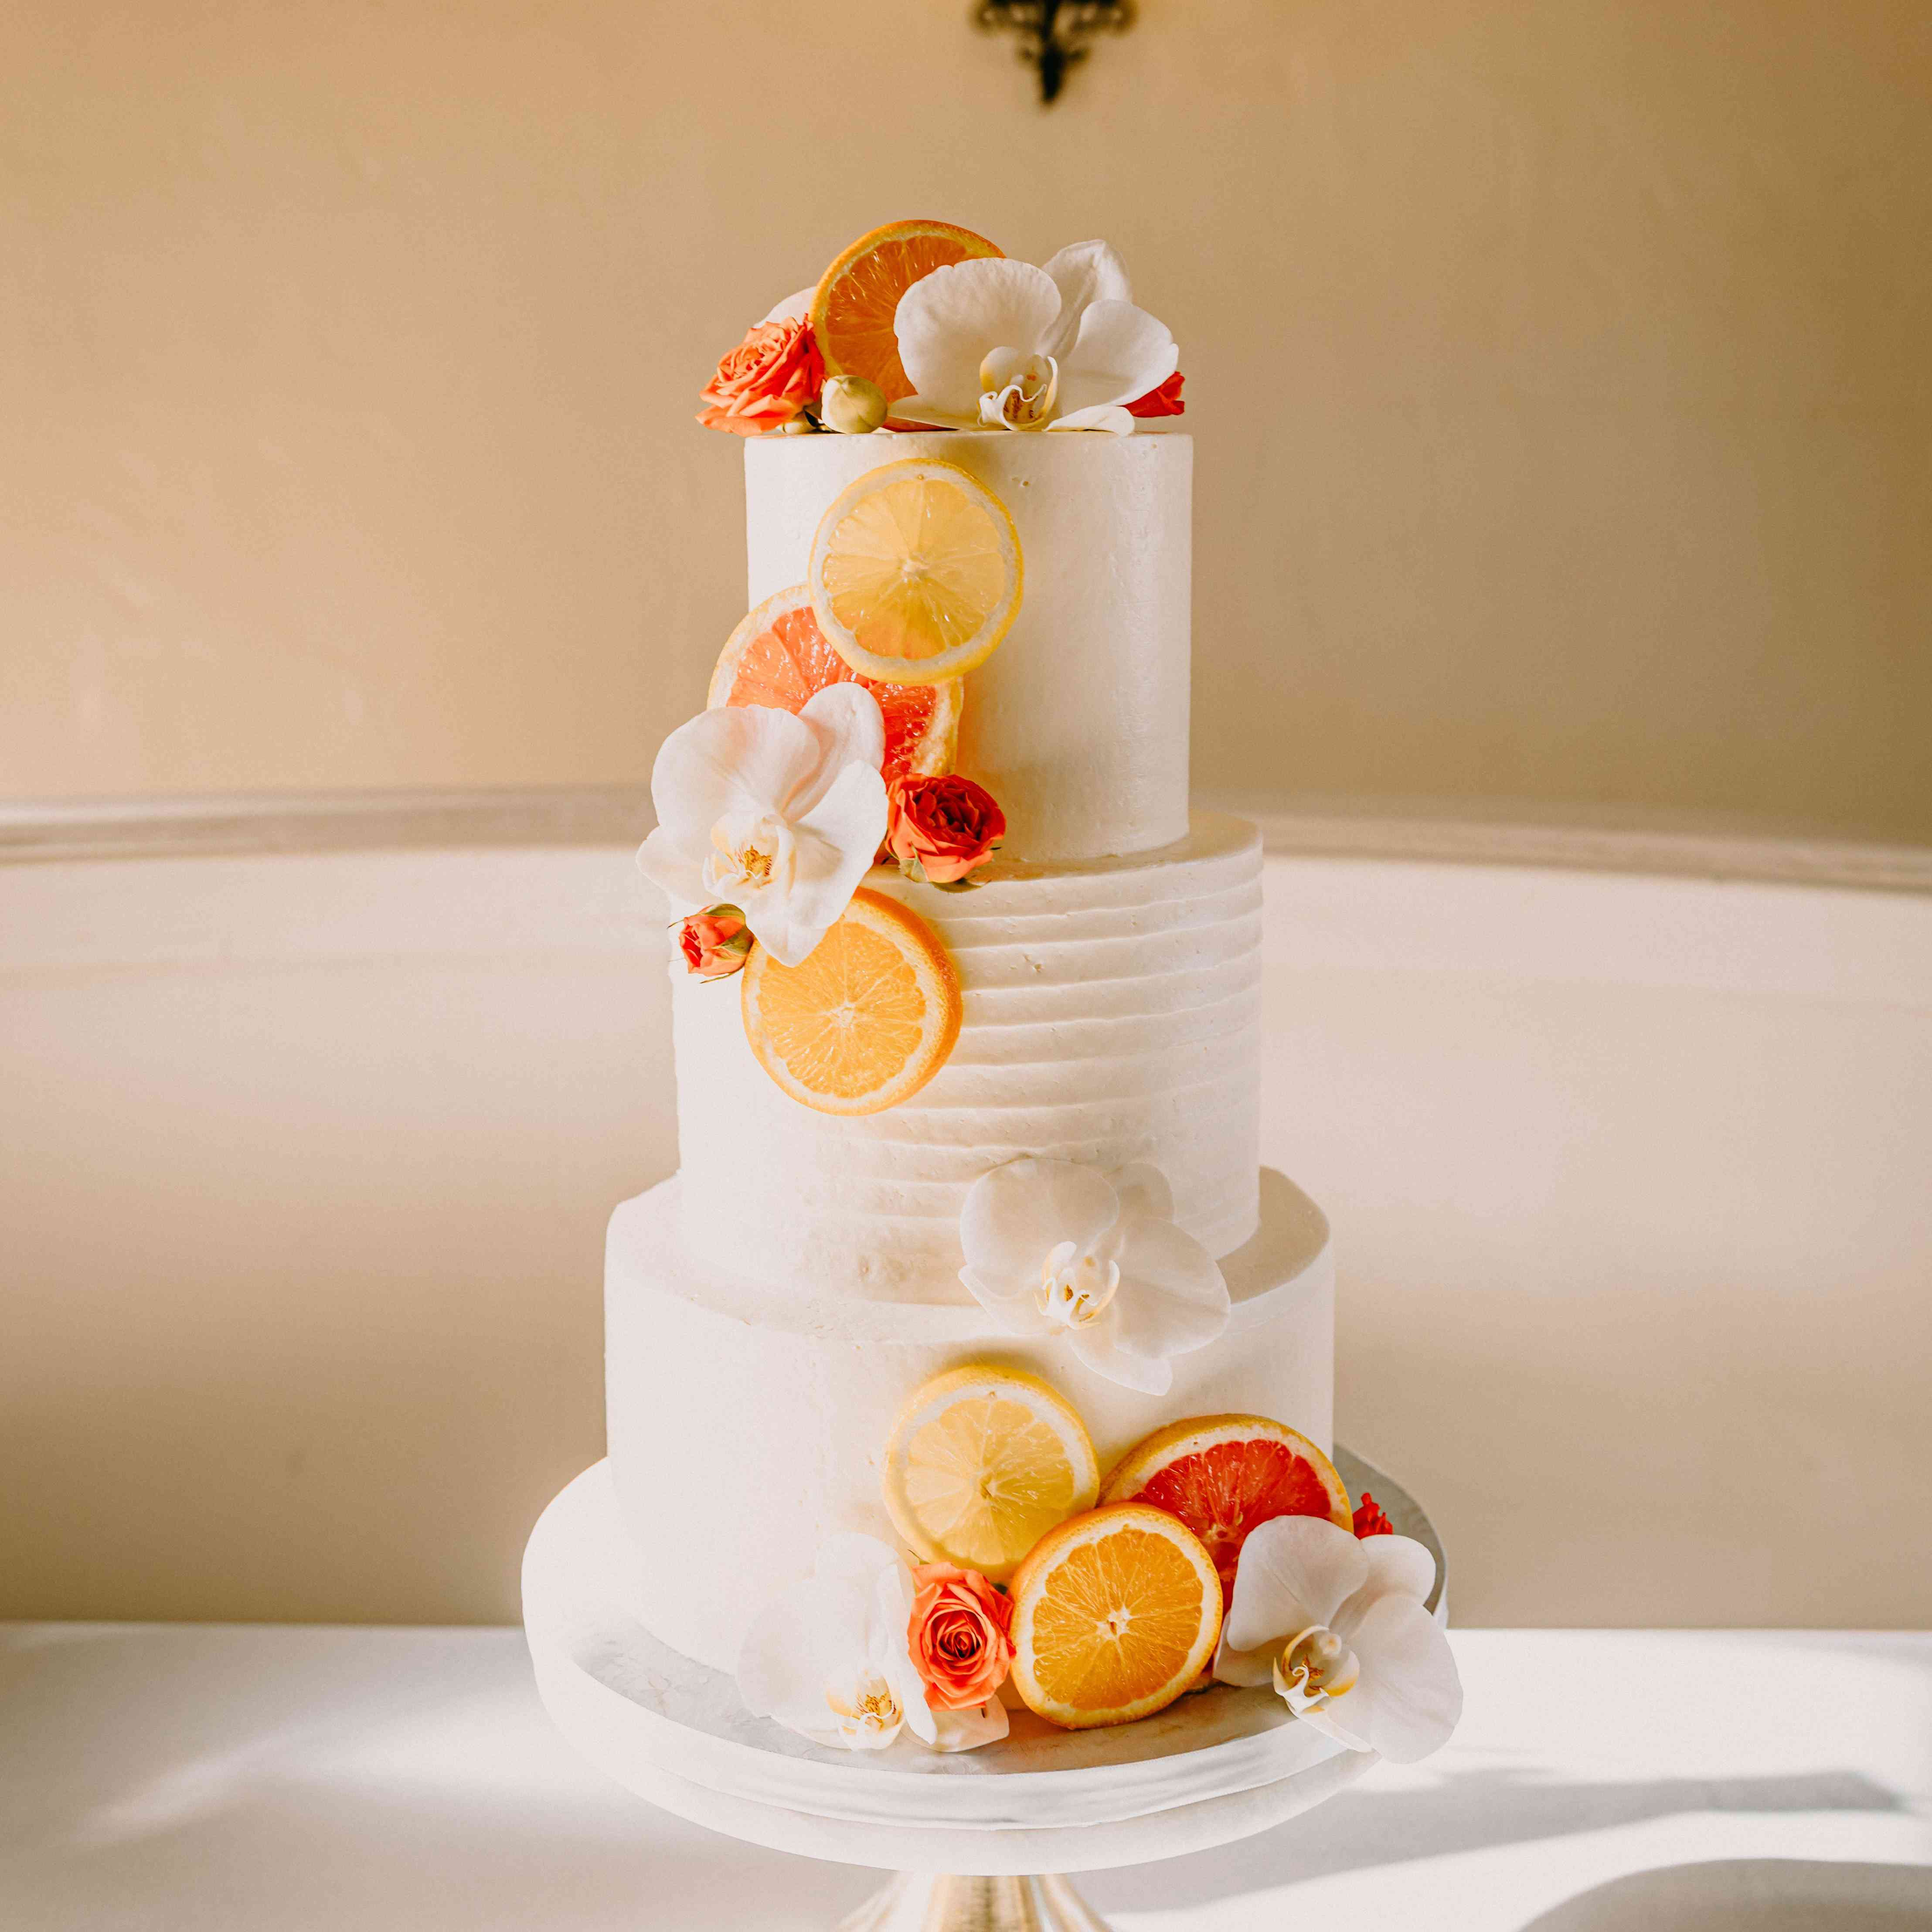 Wedding cake with flowers and citrus